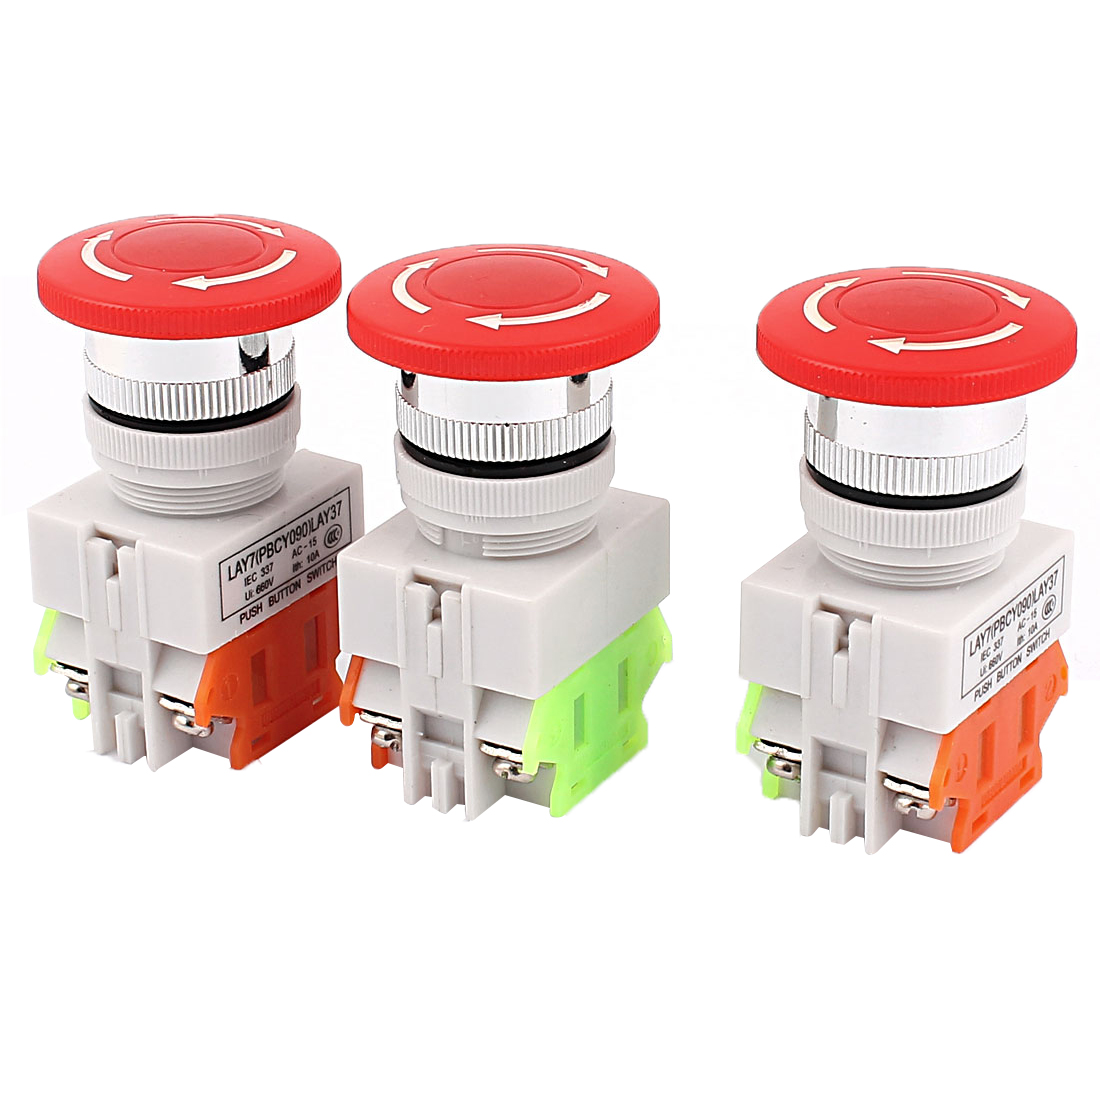 3PCS AC 600V 10A Self-locking Emergency Stop Red Mushroom Push Switch